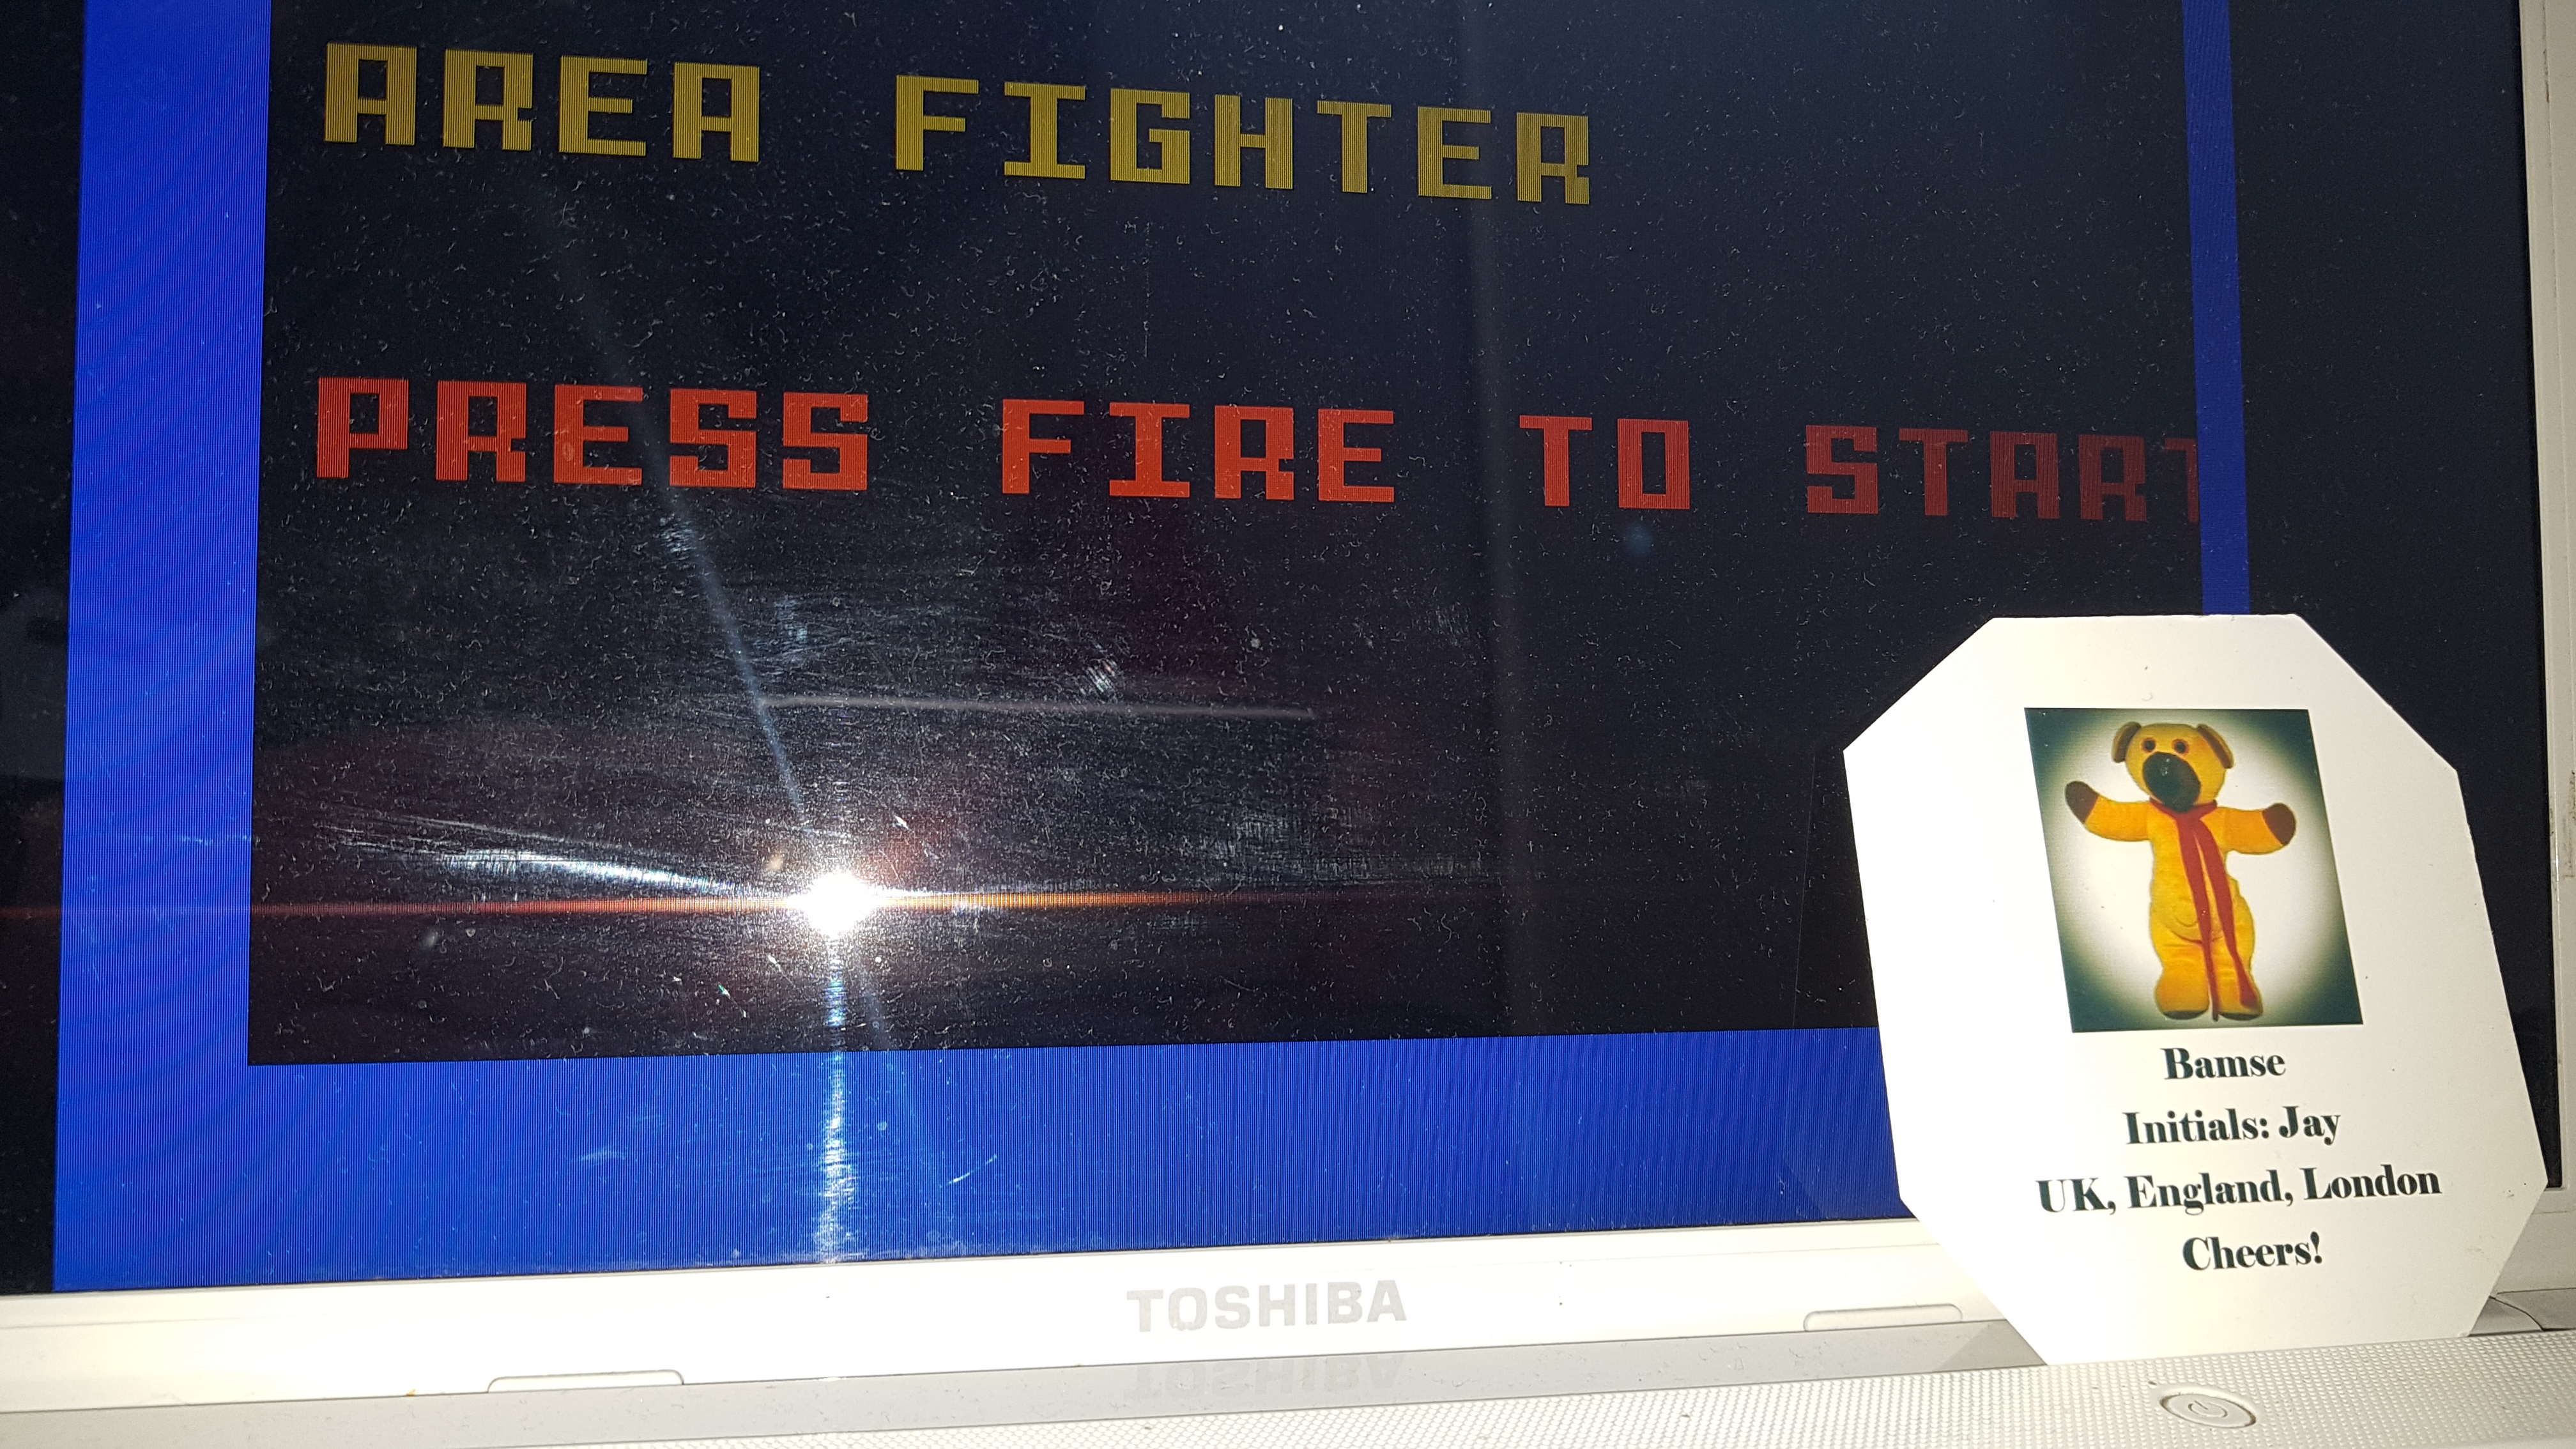 Area Fighter 90 points